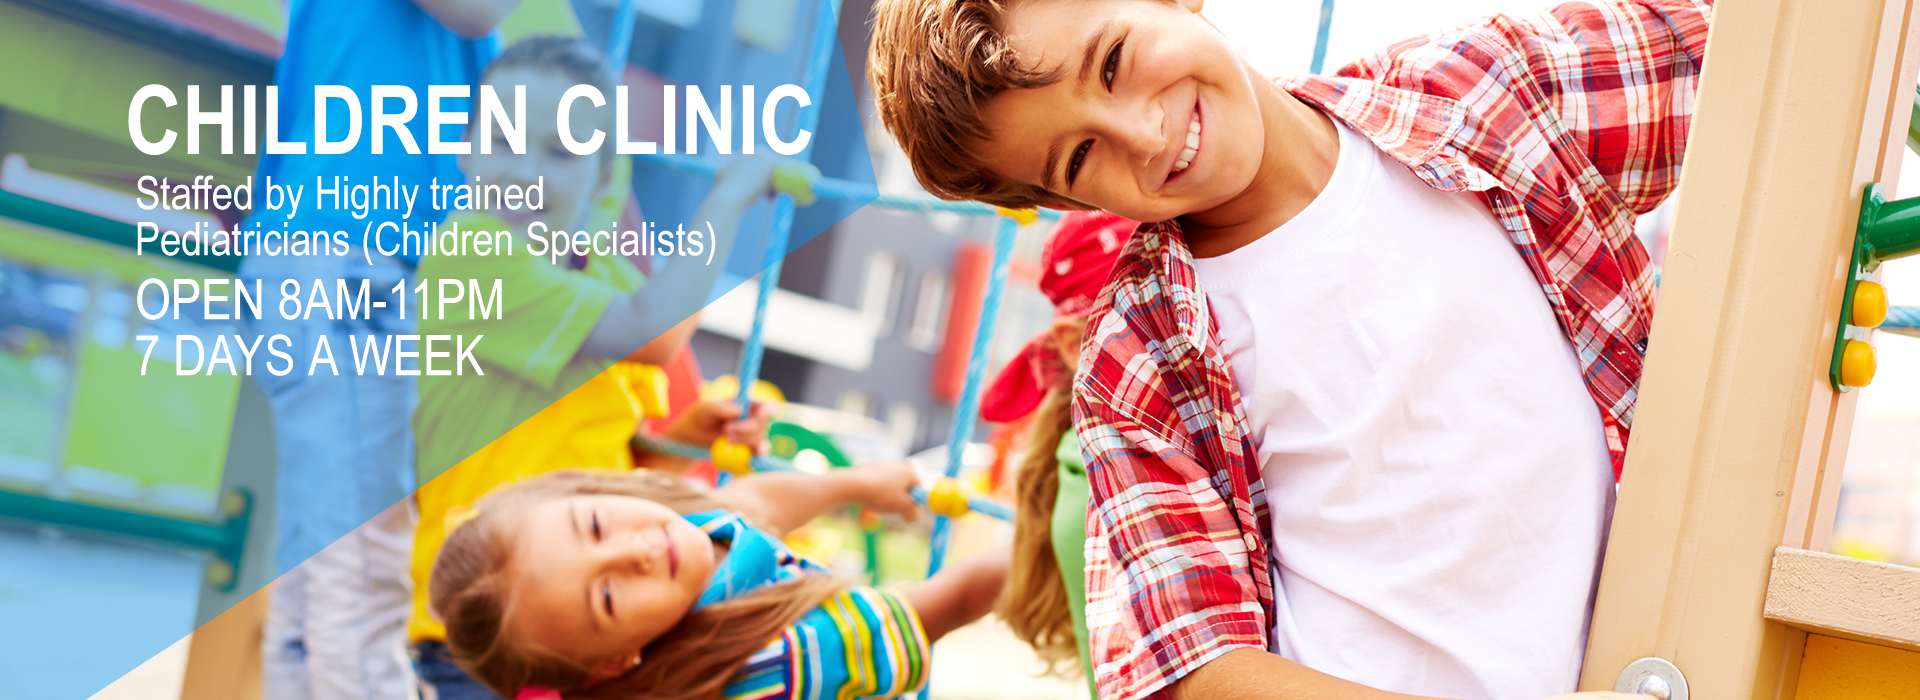 Fully qualified pediatricians are available to meet all of your kid's or baby's needs.